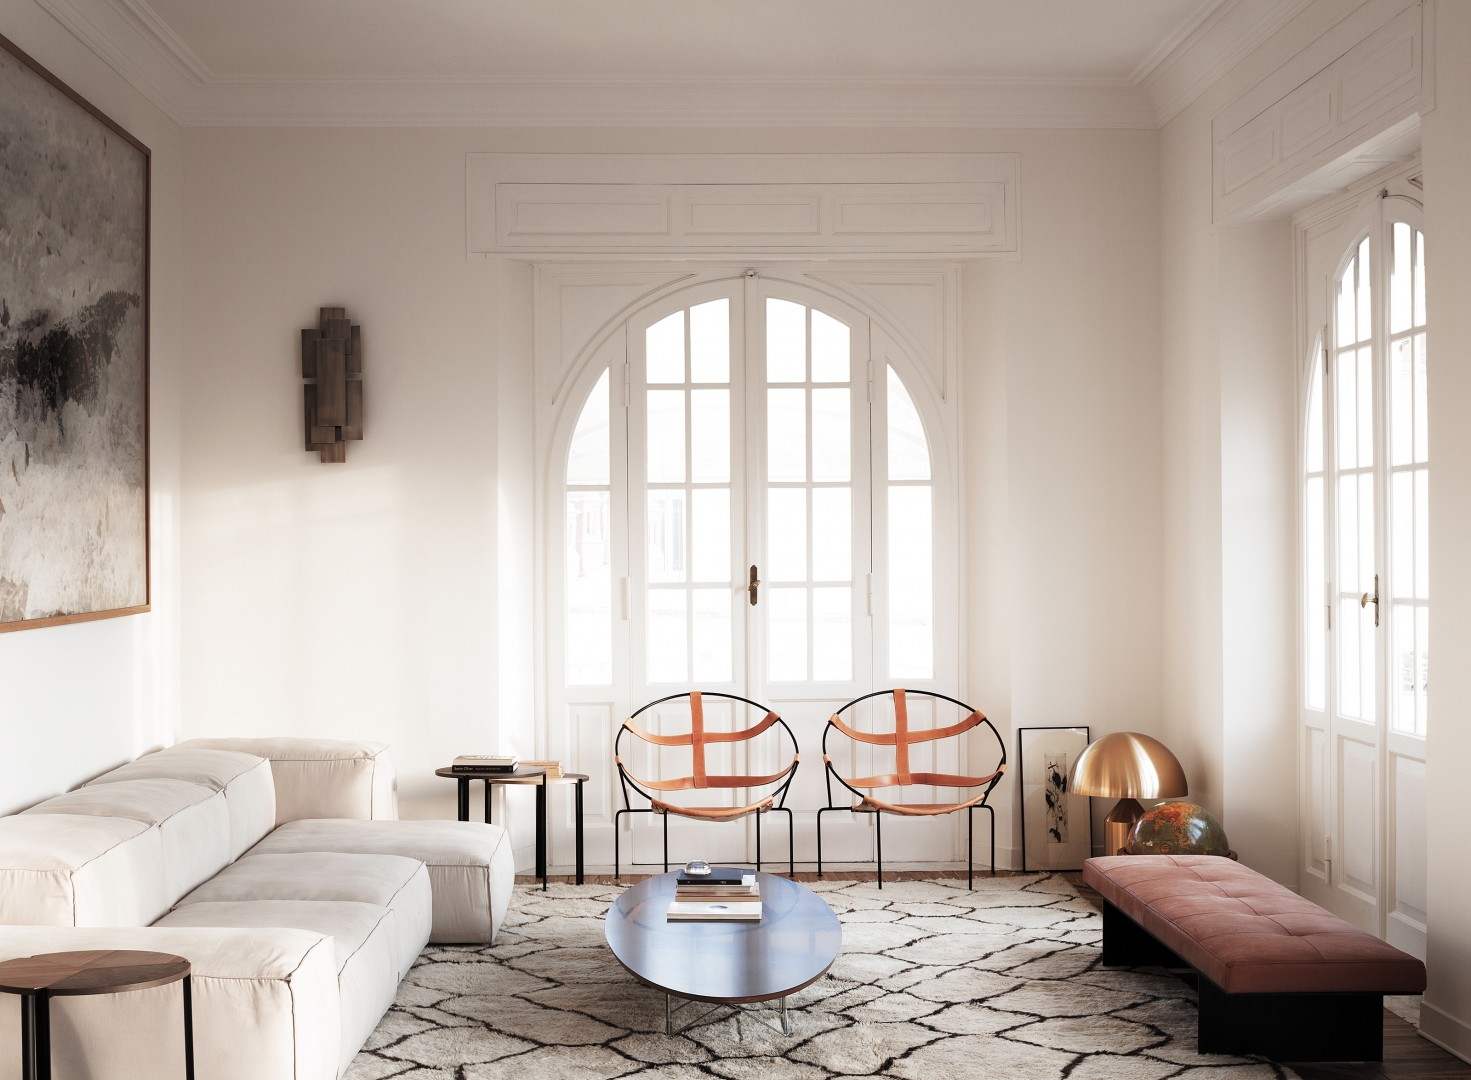 Cultured cm apartment showcases refined chic roman style